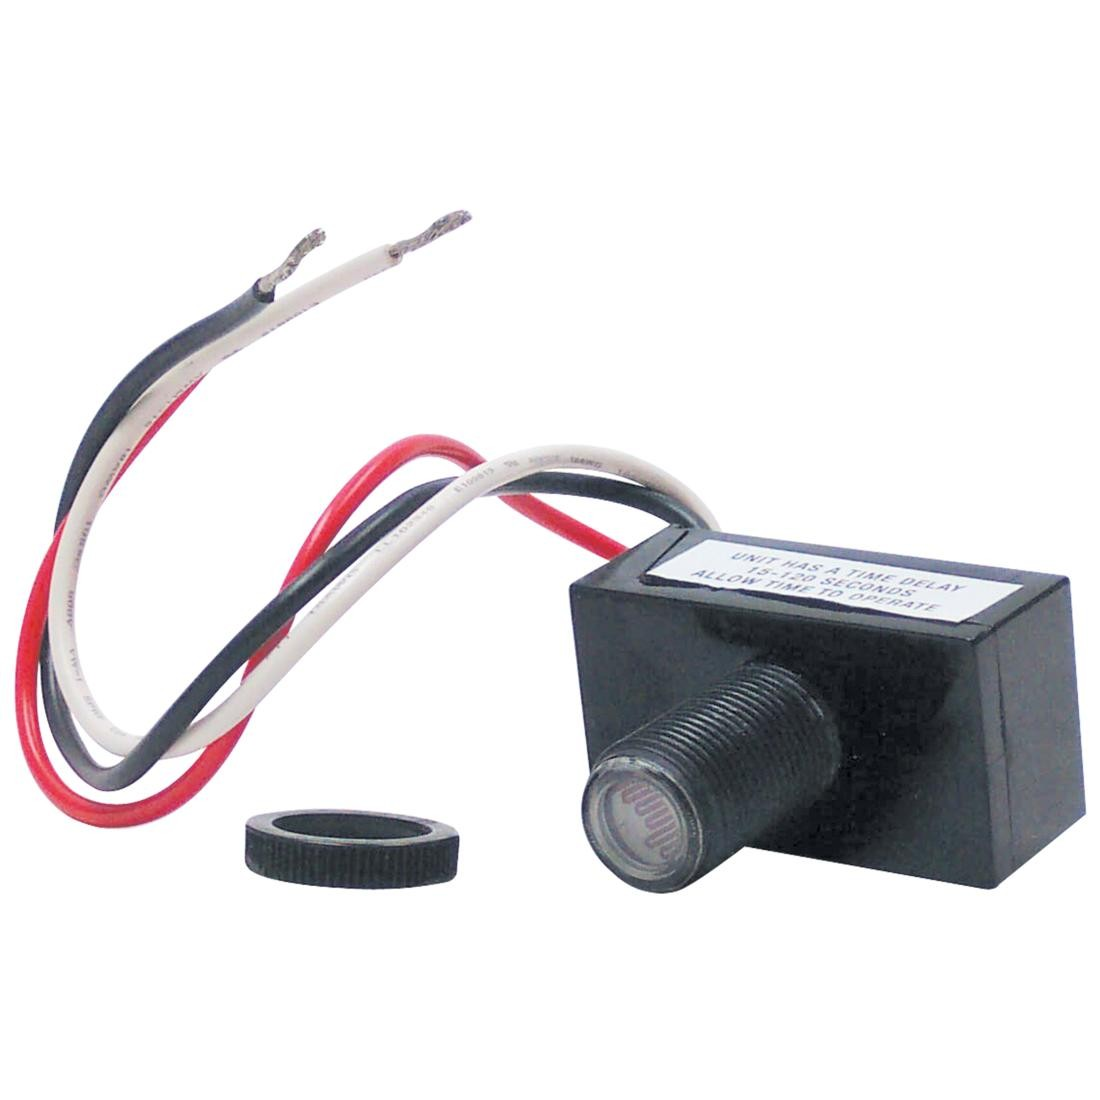 wiring diagram for 208 volt photocell wiring image precision t 368 fixed nipple photocell 3000 watt maximum 208v 277v on wiring diagram for 208